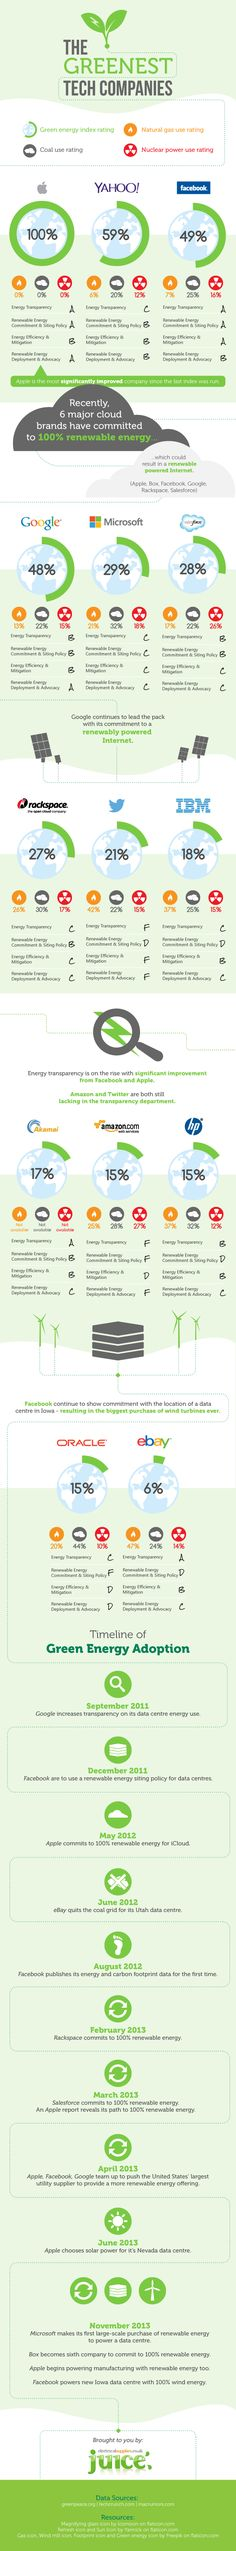 The Greenest Tech Companies    #infographic #Business #Technology #Energy